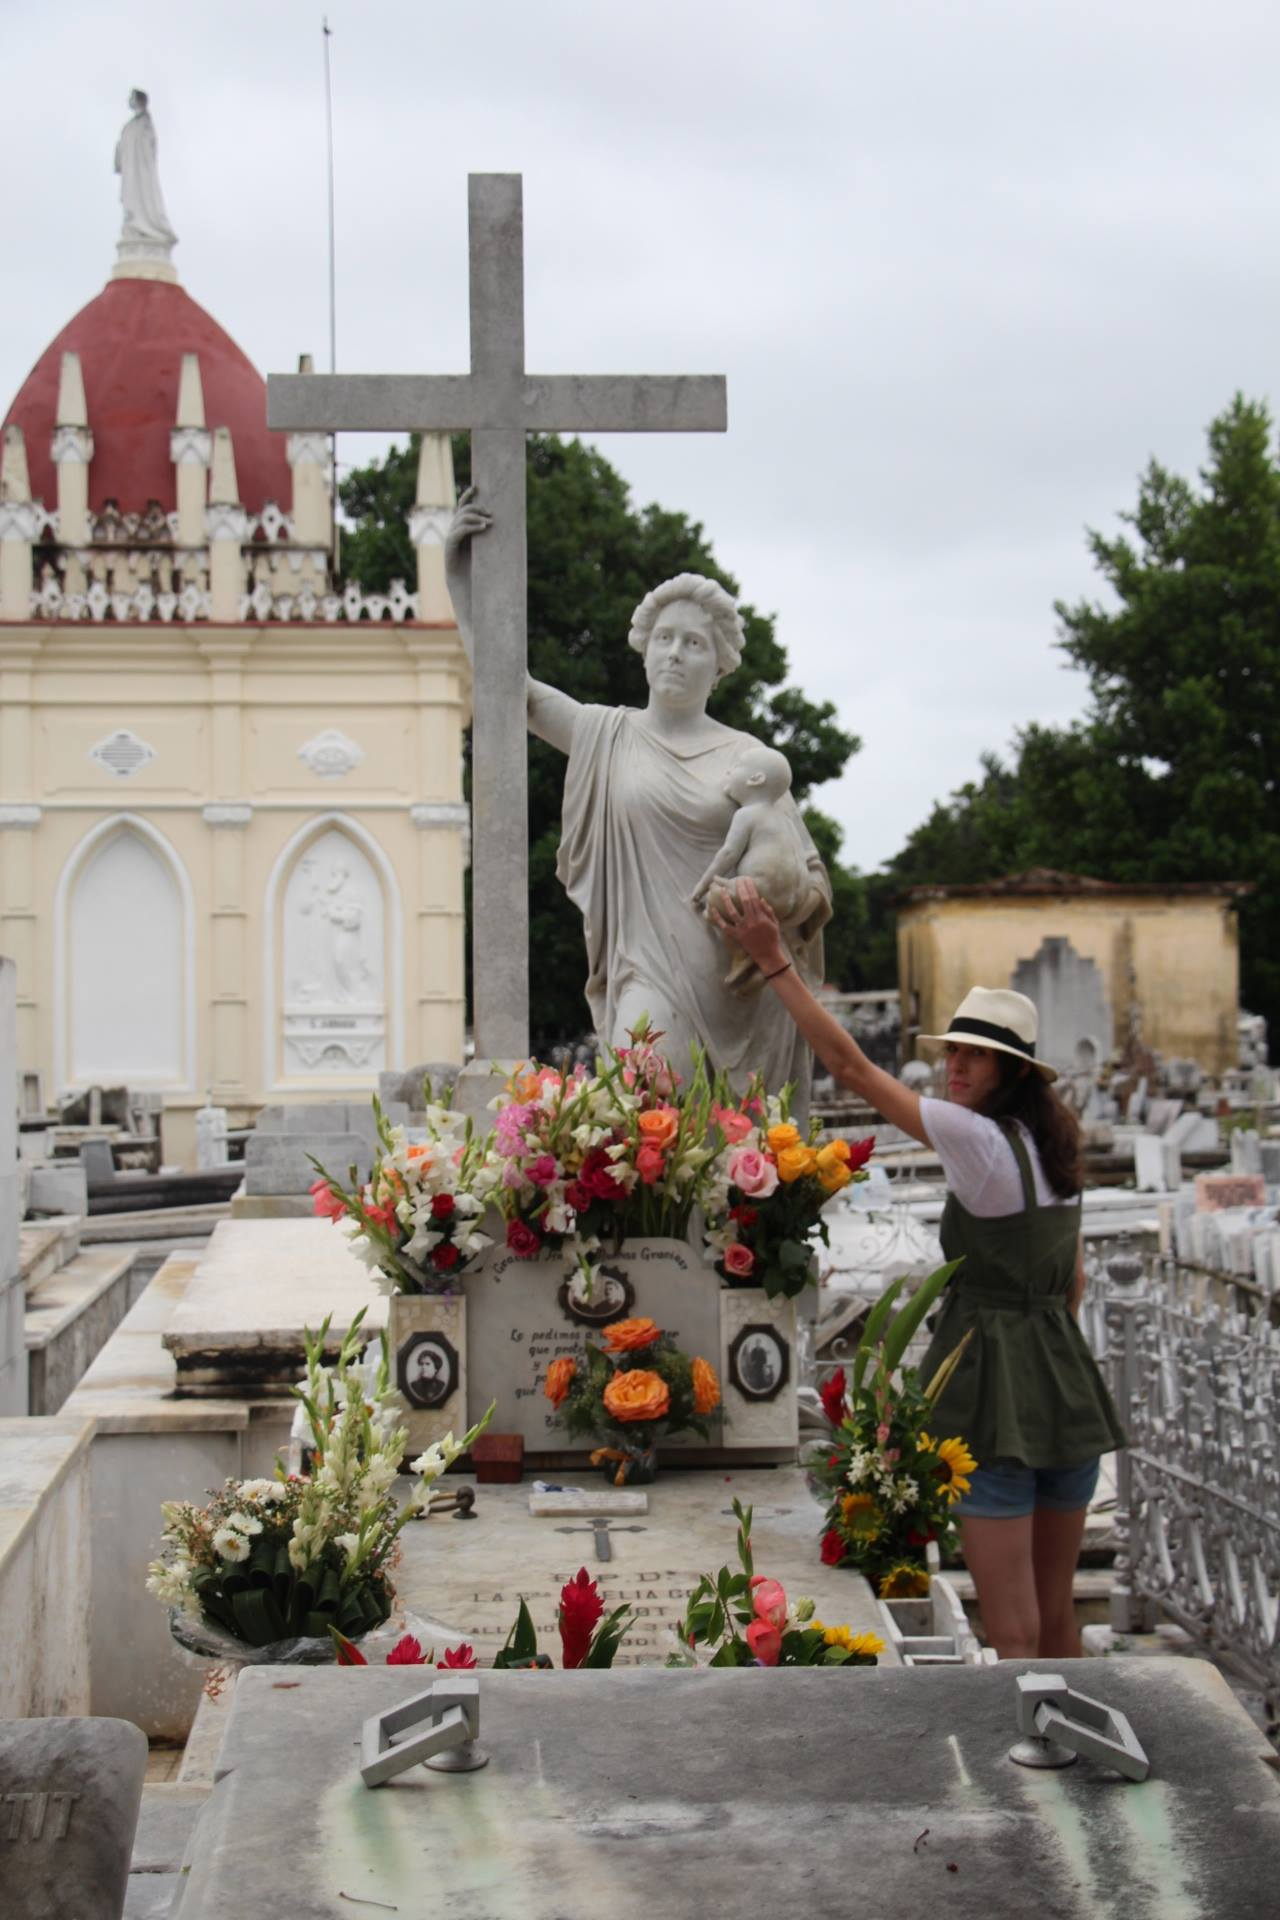 The main cemetary in Havana is very much worth a visit. Here Emily leaves a wish based on a local legend.